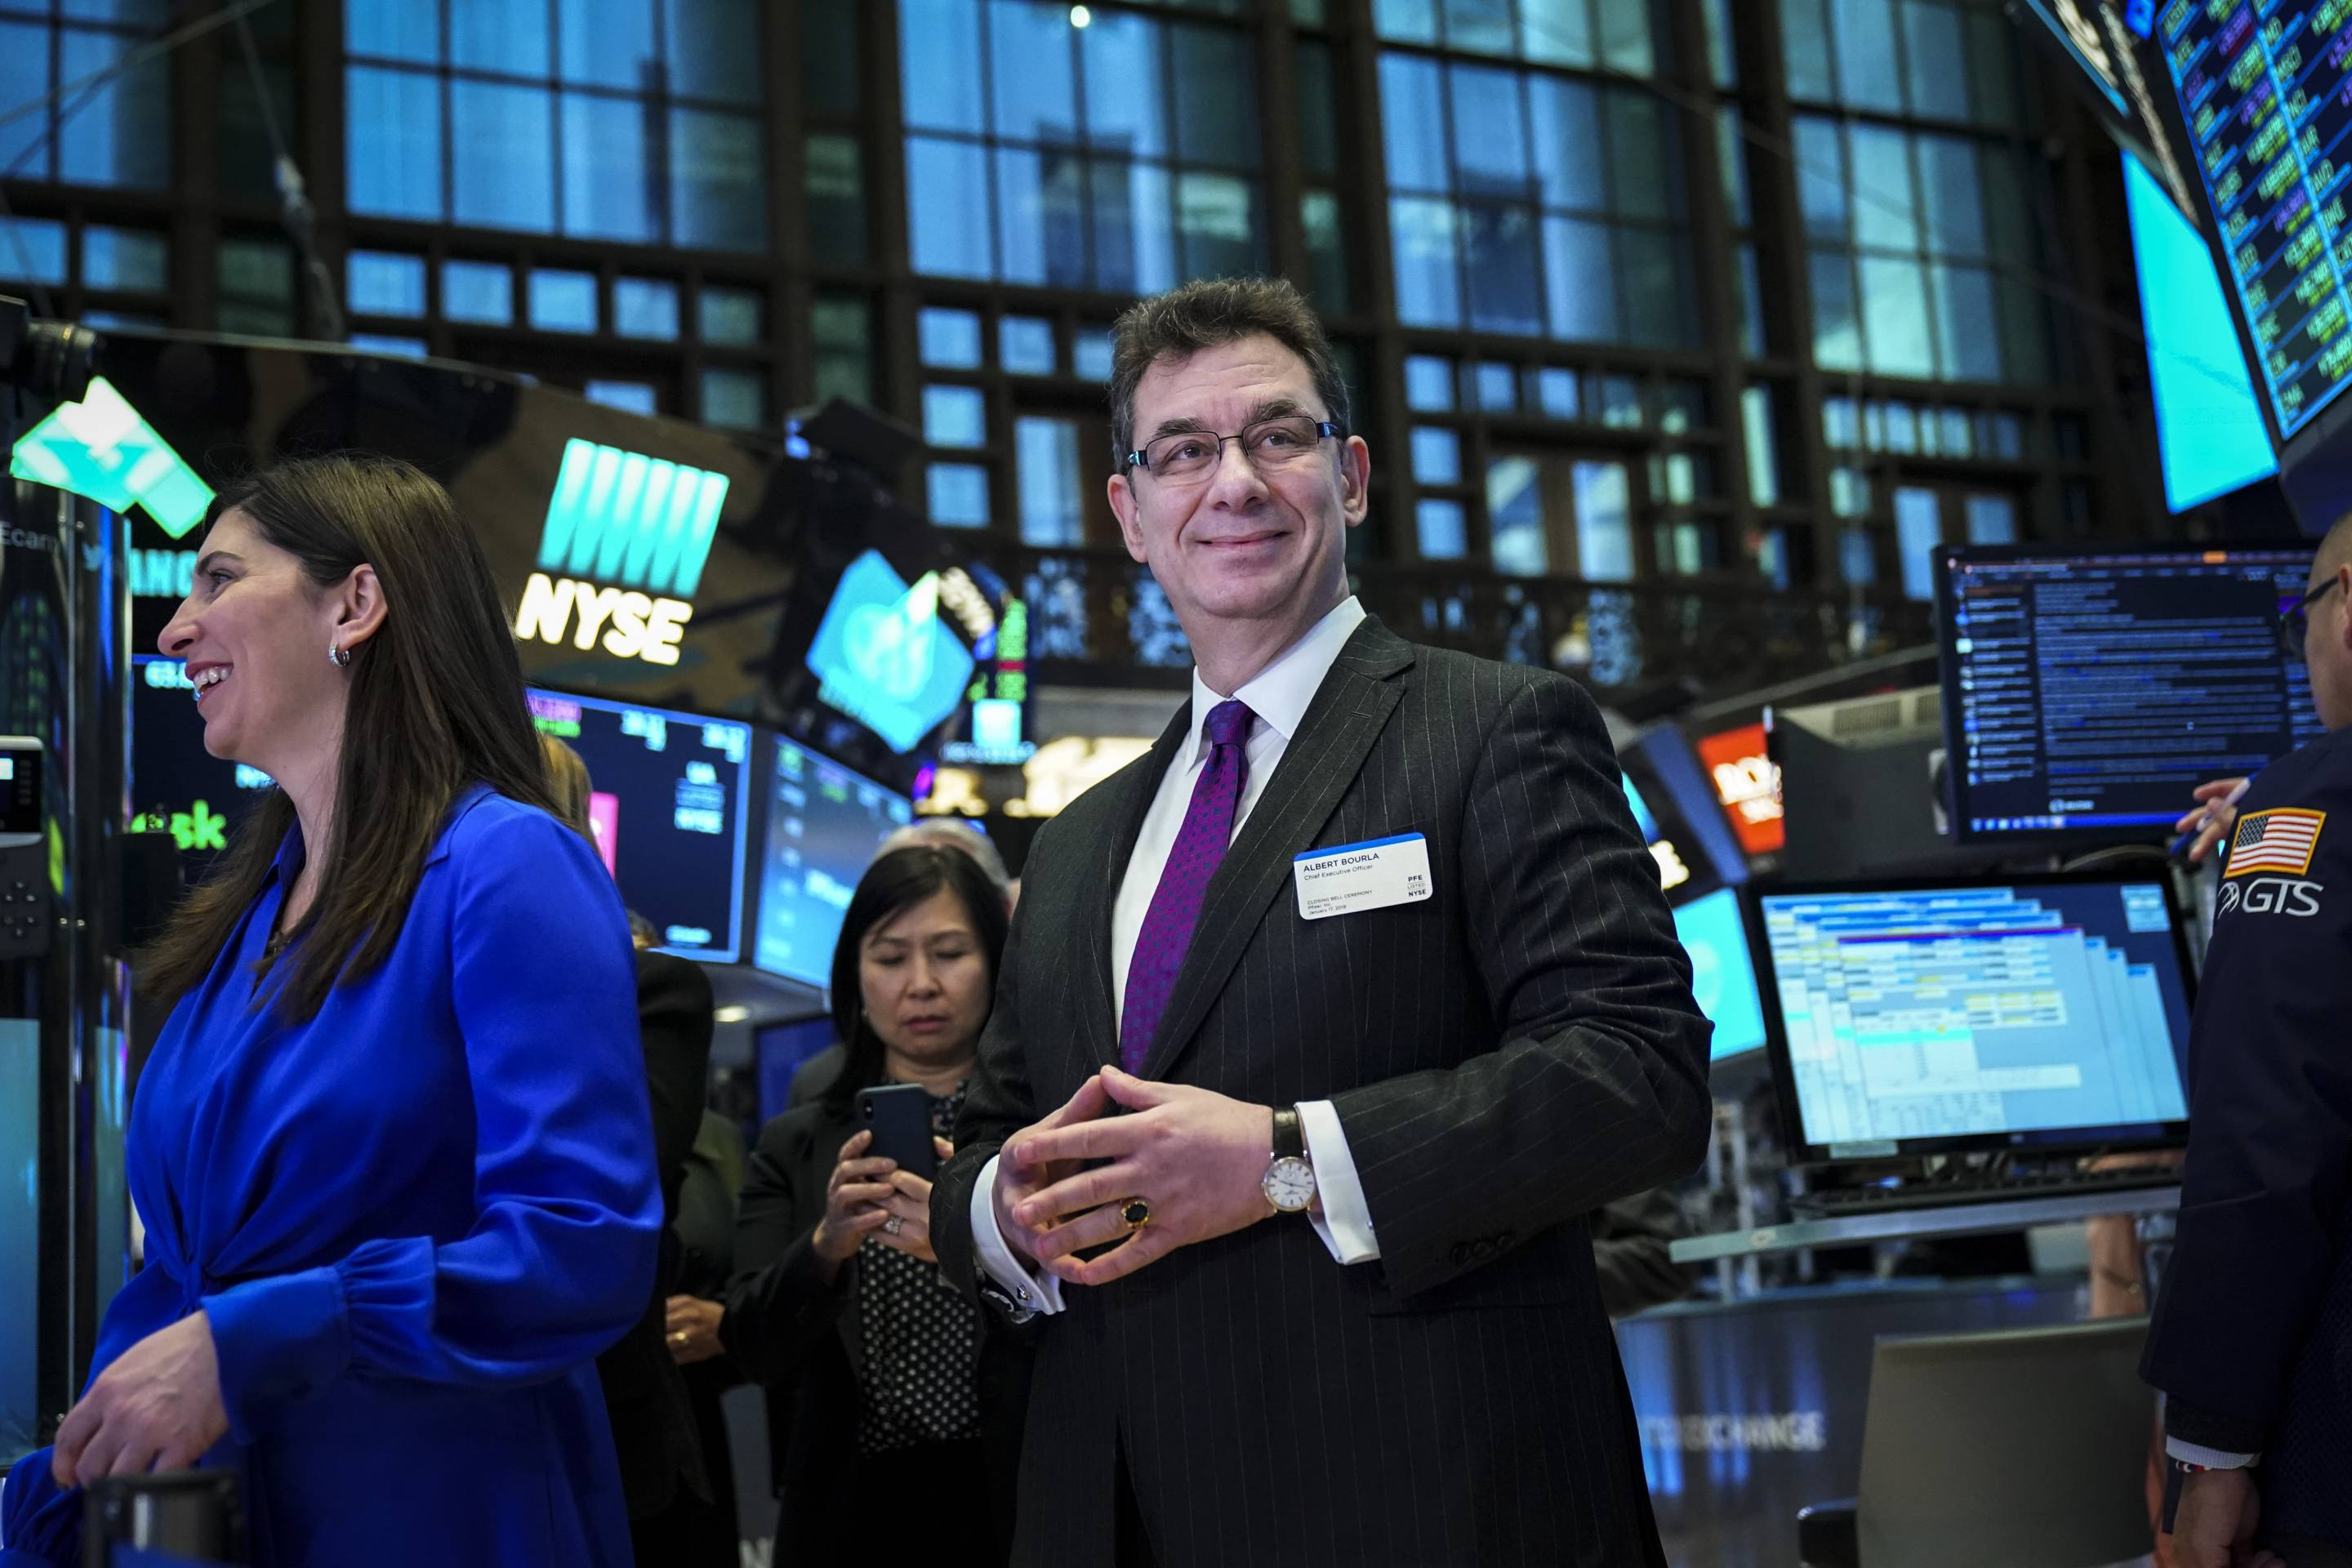 Pfizer CEO Rings NYSE Closing Bell As Stocks Rally On China Trade Hopes